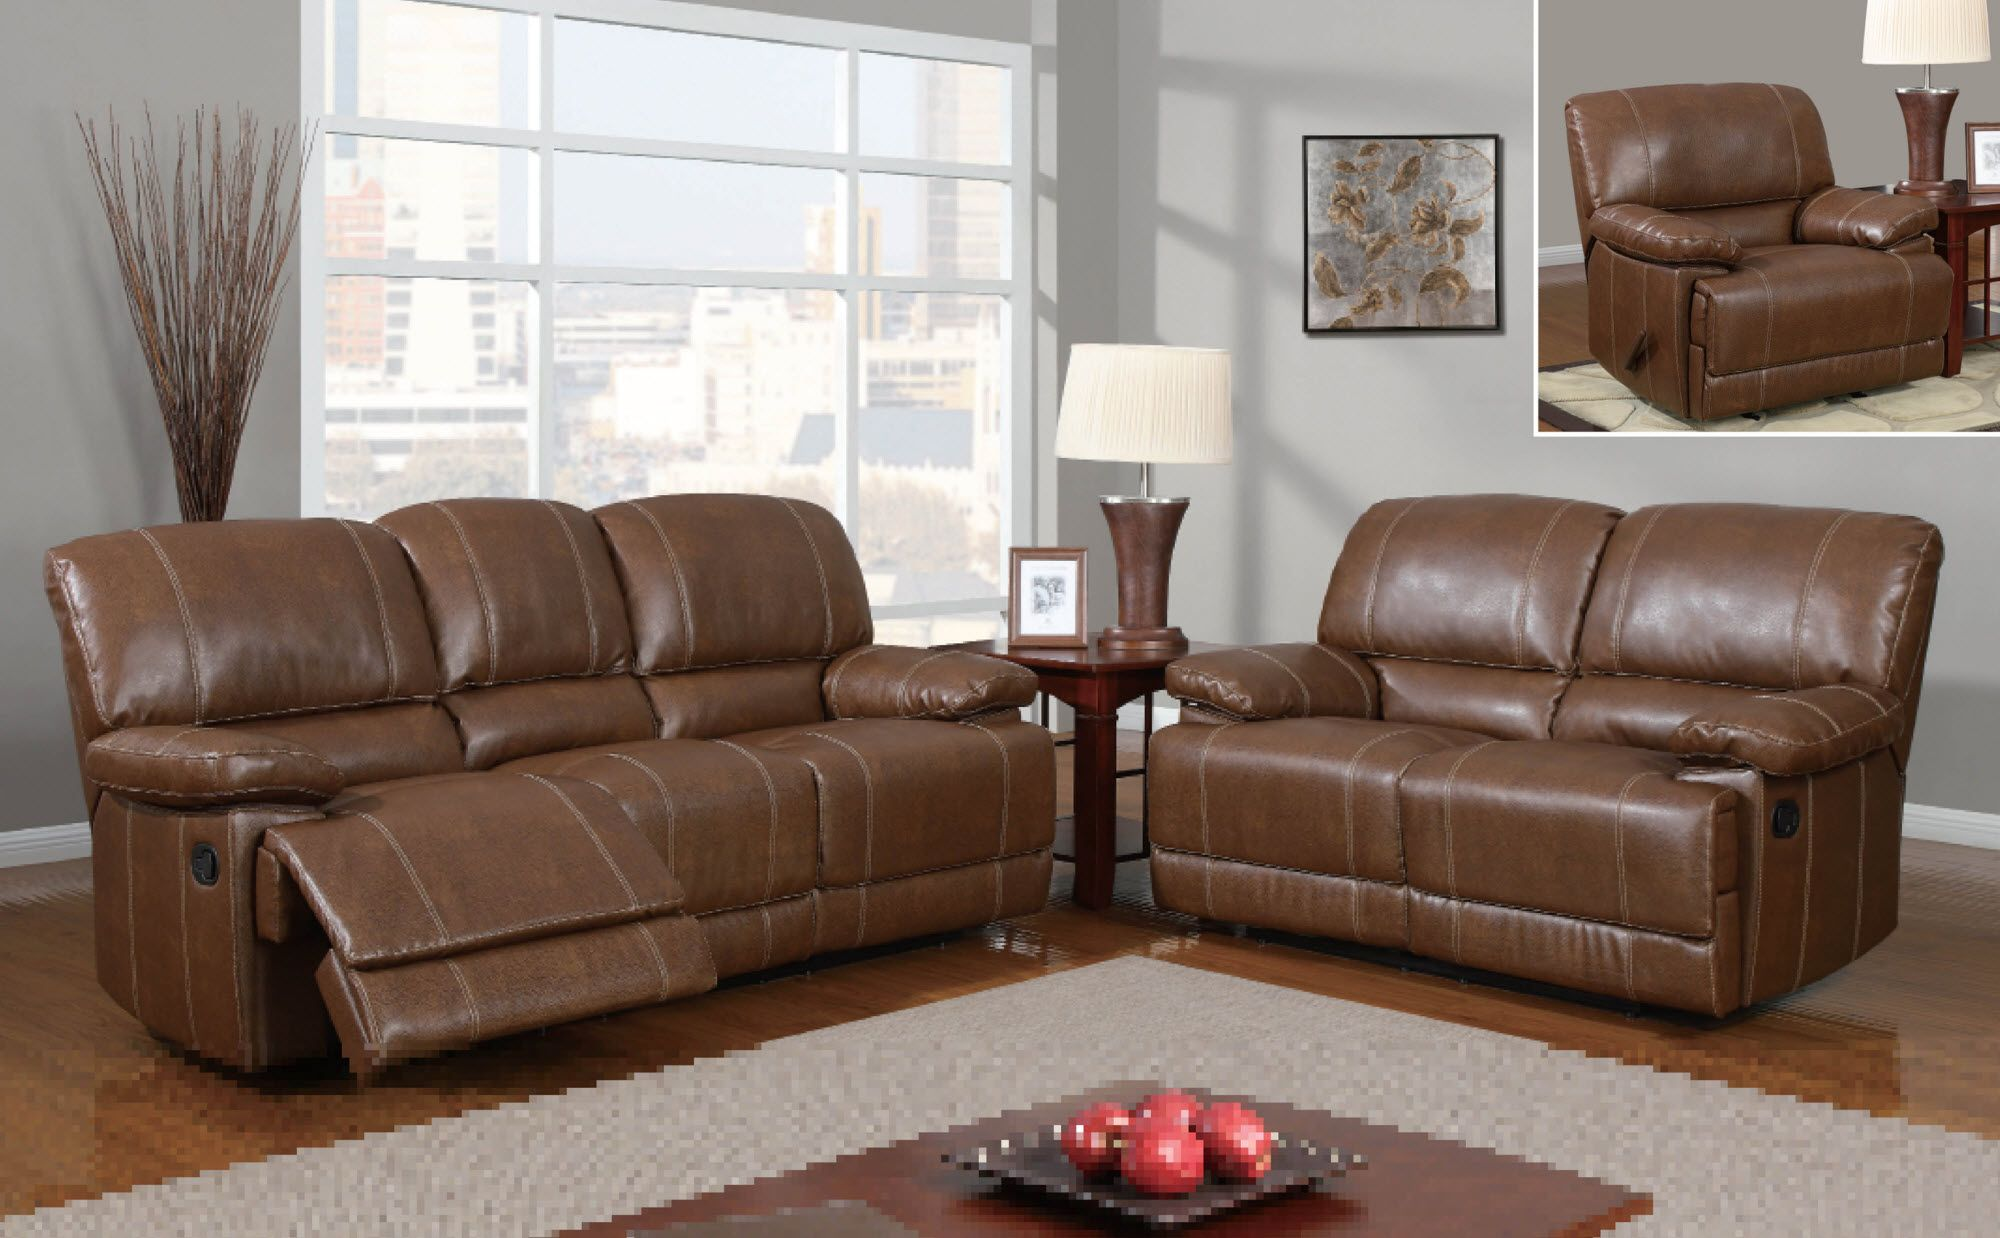 brooklyn bonded leather lounger chair and ottoman flip out sleeper furniture in at gogofurniture com brown 2 pc reclining sofa set with accent stitching loveseat recliner